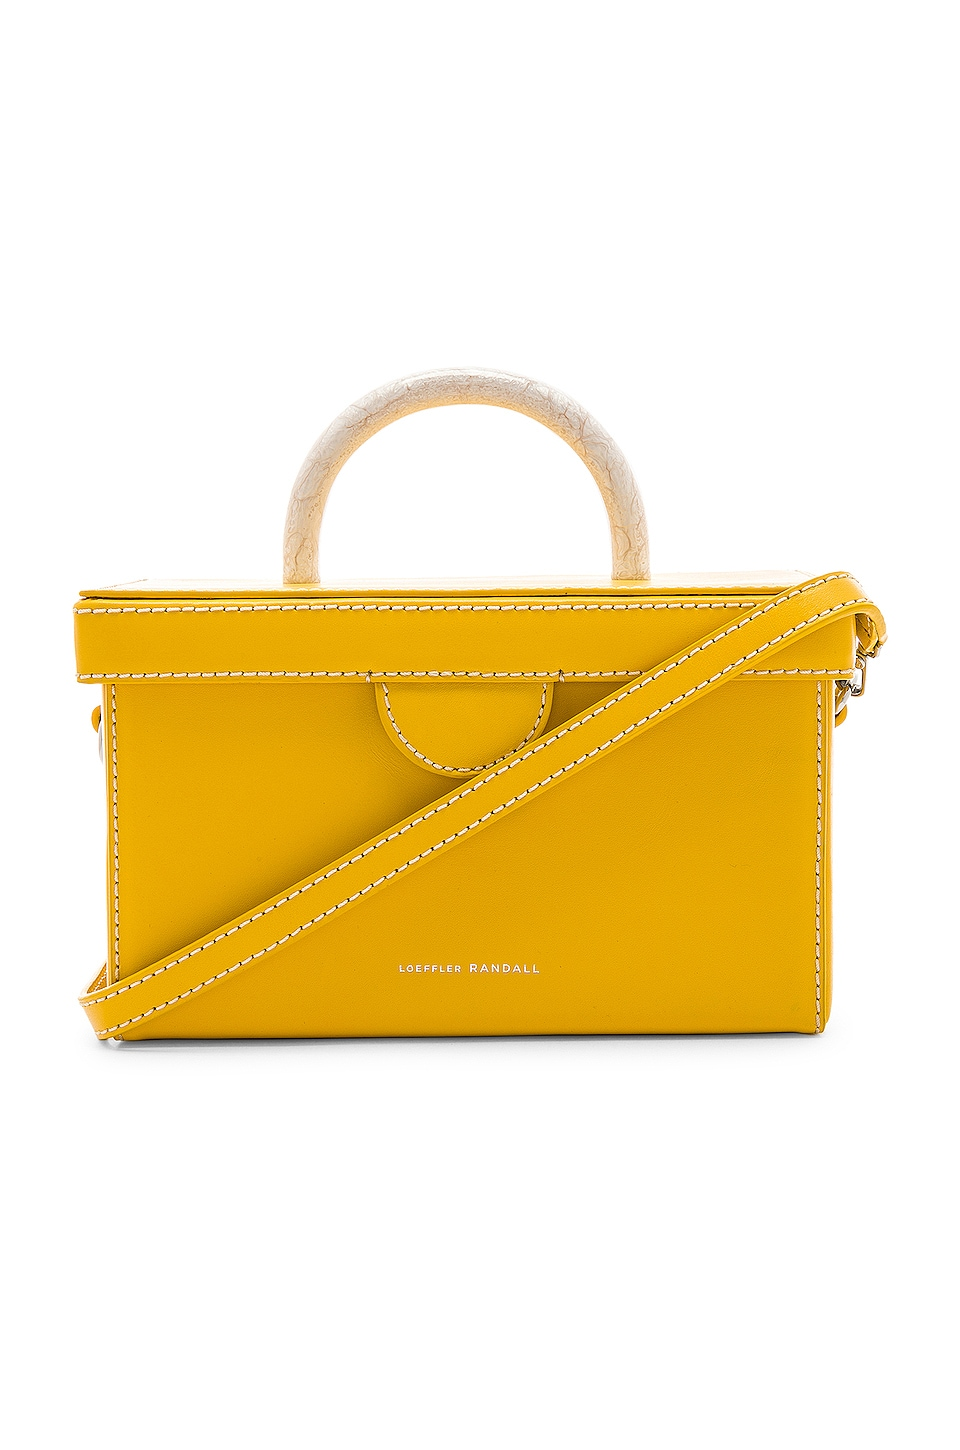 Loeffler Randall Box Bag in Dandelion